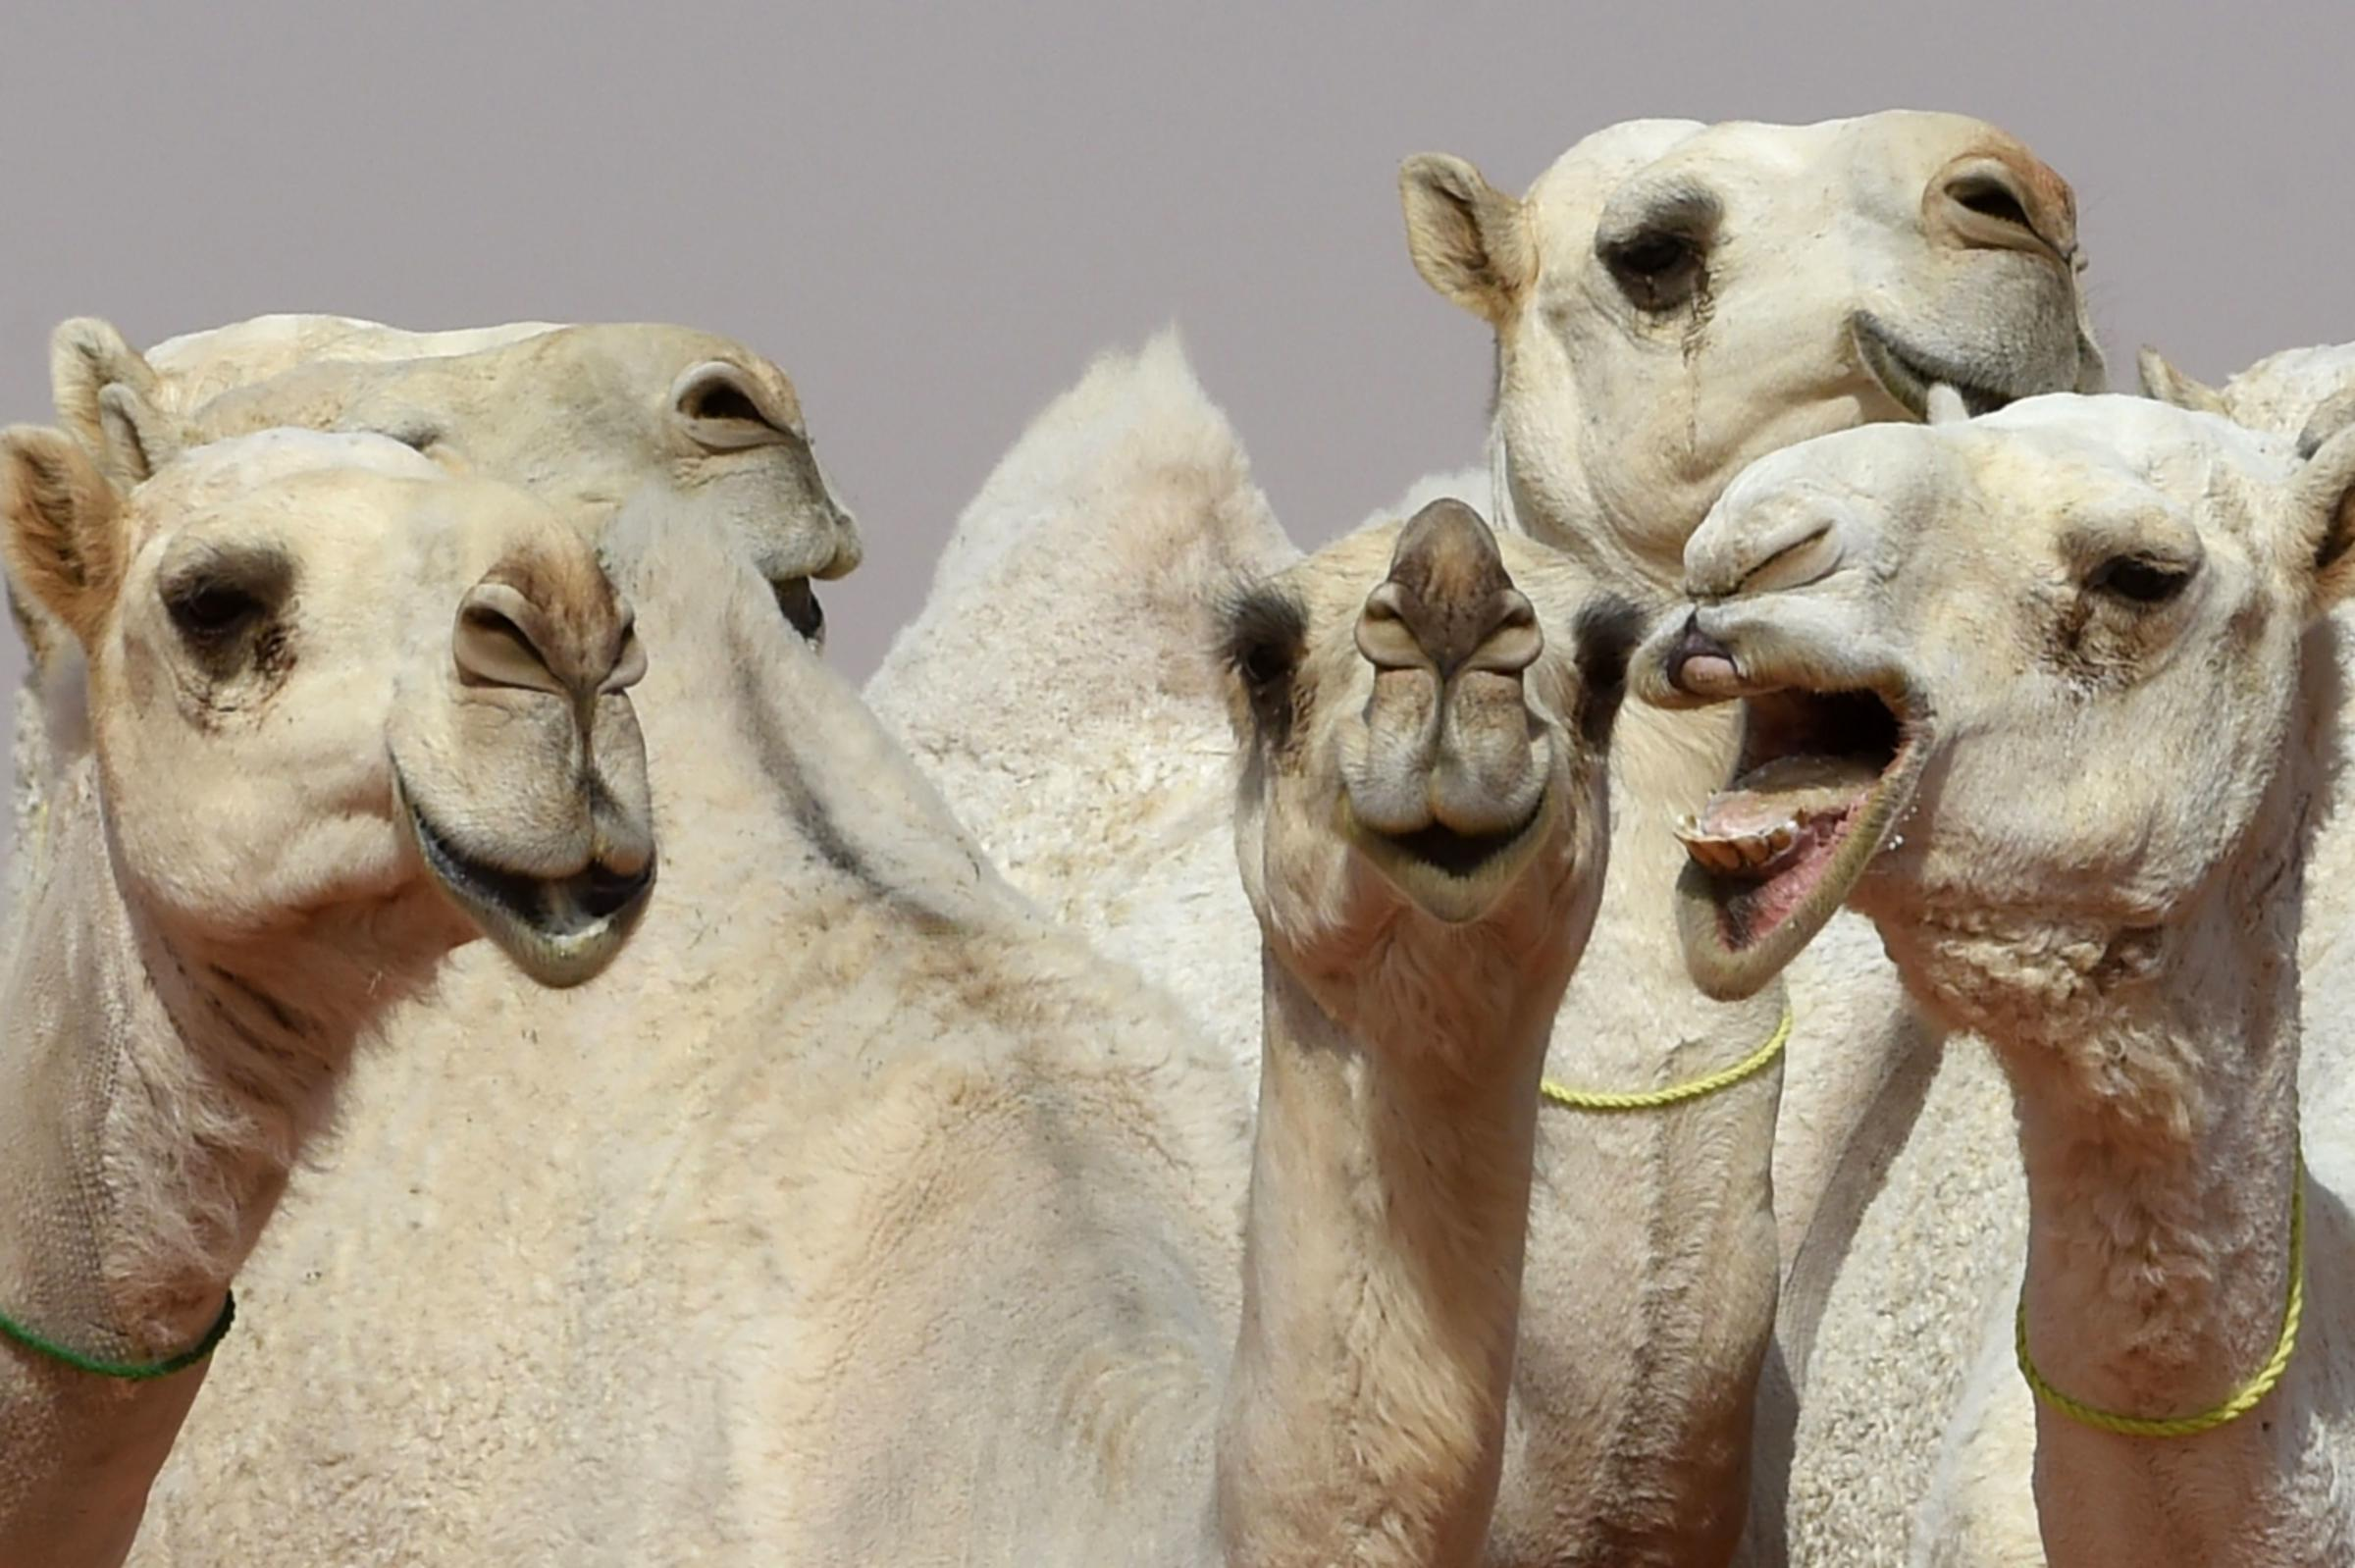 Saudi Beauty Competition Disqualifies Twelve Camels for Botox Injections